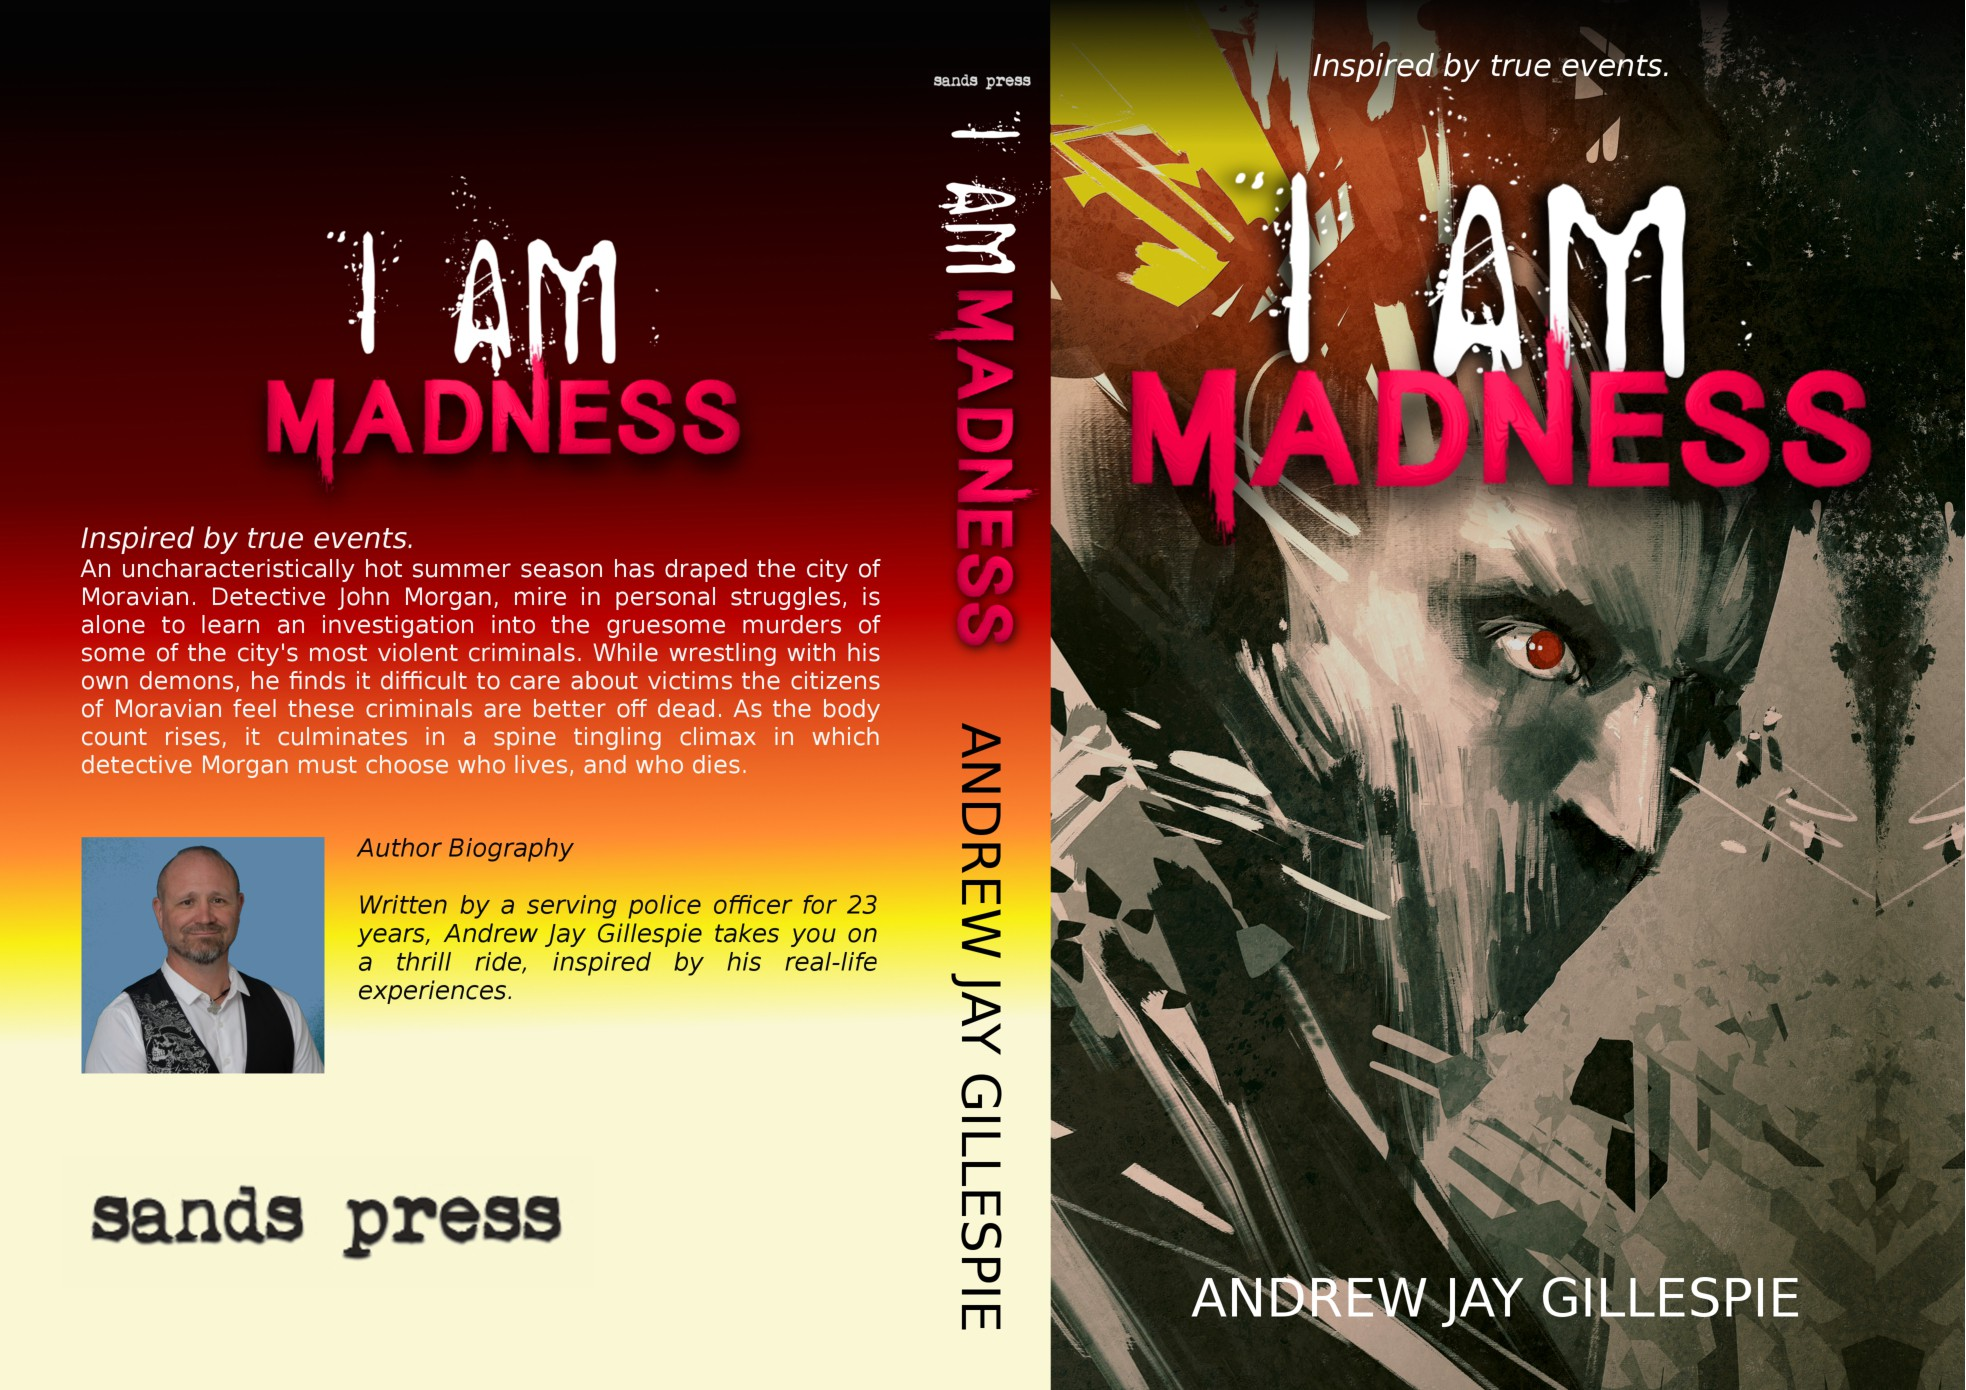 I Am Madness by Andrew Jay Gillespie published by Sands Press